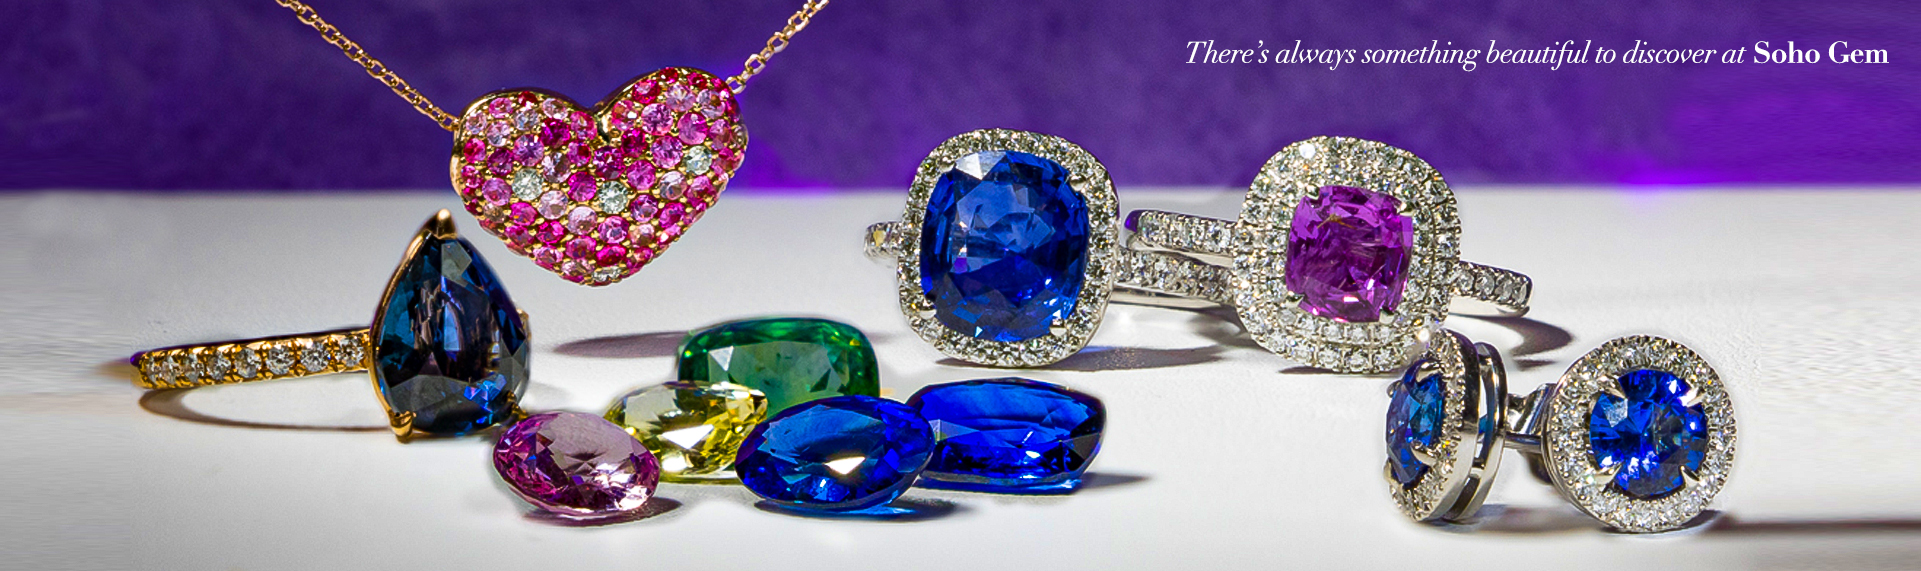 -sapphire-ring-jewelry-page2.jpg